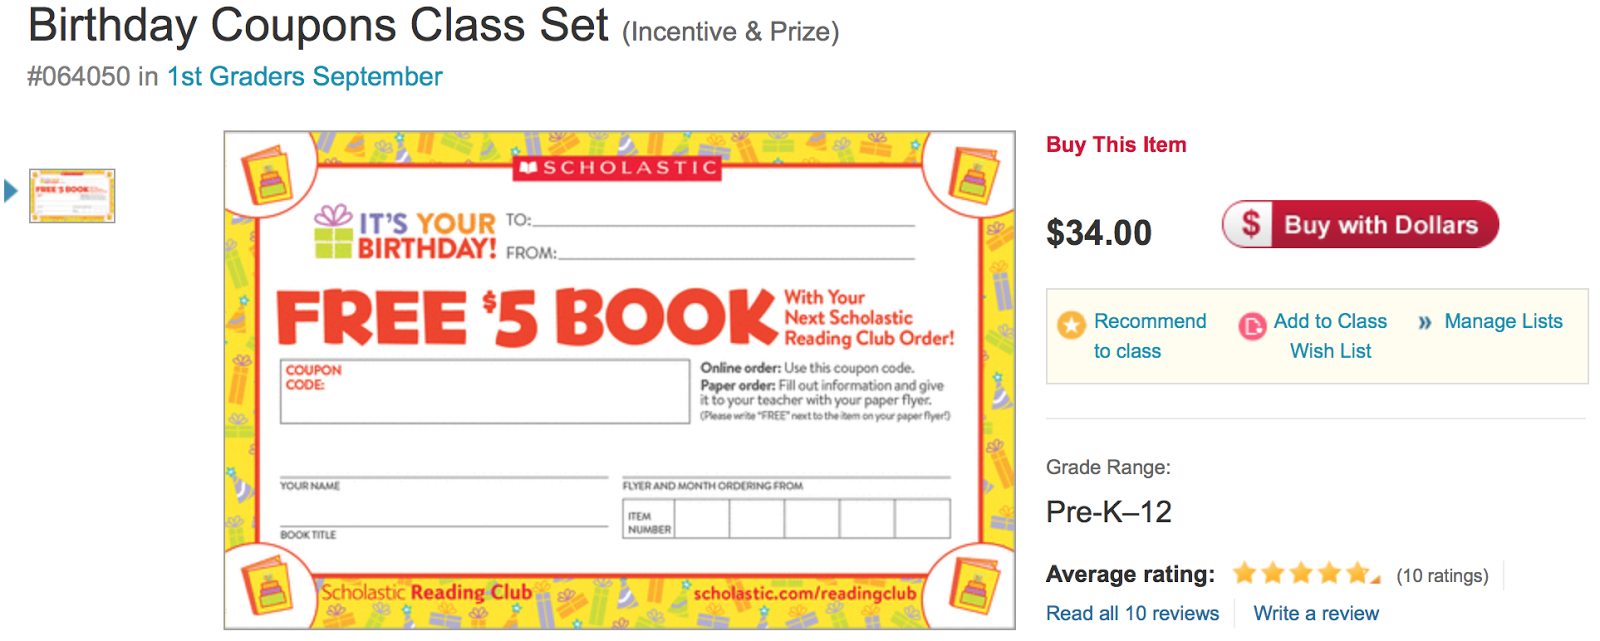 Scholastic Store Coupon Codes. Sort By: Popularity. Newest. Ending Soon. Add Favorite. Offer is not Valid at Scholastic Book Clubs. Include nearby city with my comment to help other users. Post Comment. including Scholastic Store, in the Best of RetailMeNot emails. Please enter a valid email address. Subscribe.